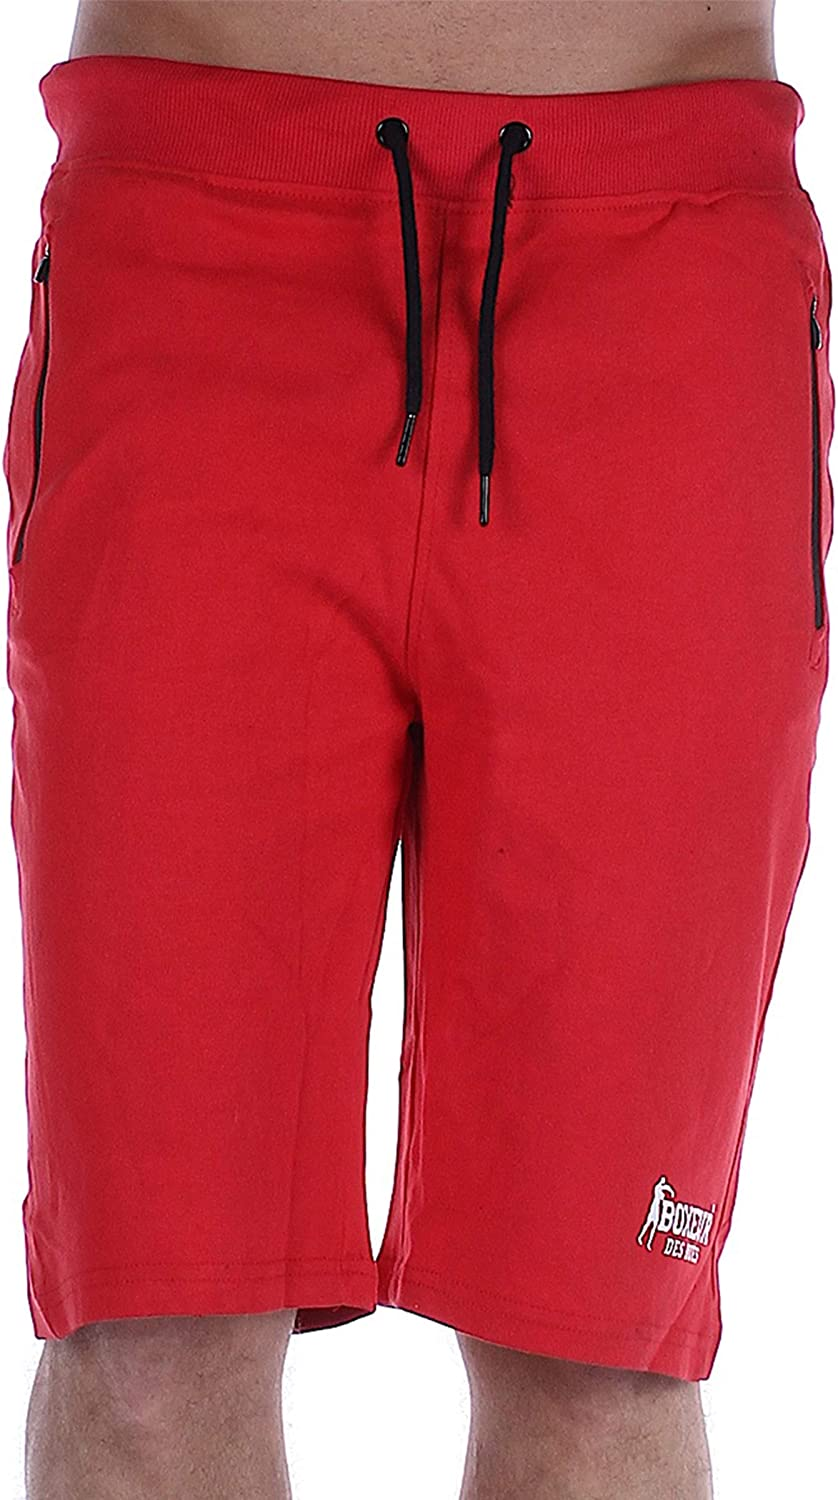 BOXEUR DES RUES - Man Shorts with Heat Welded Pockets Man